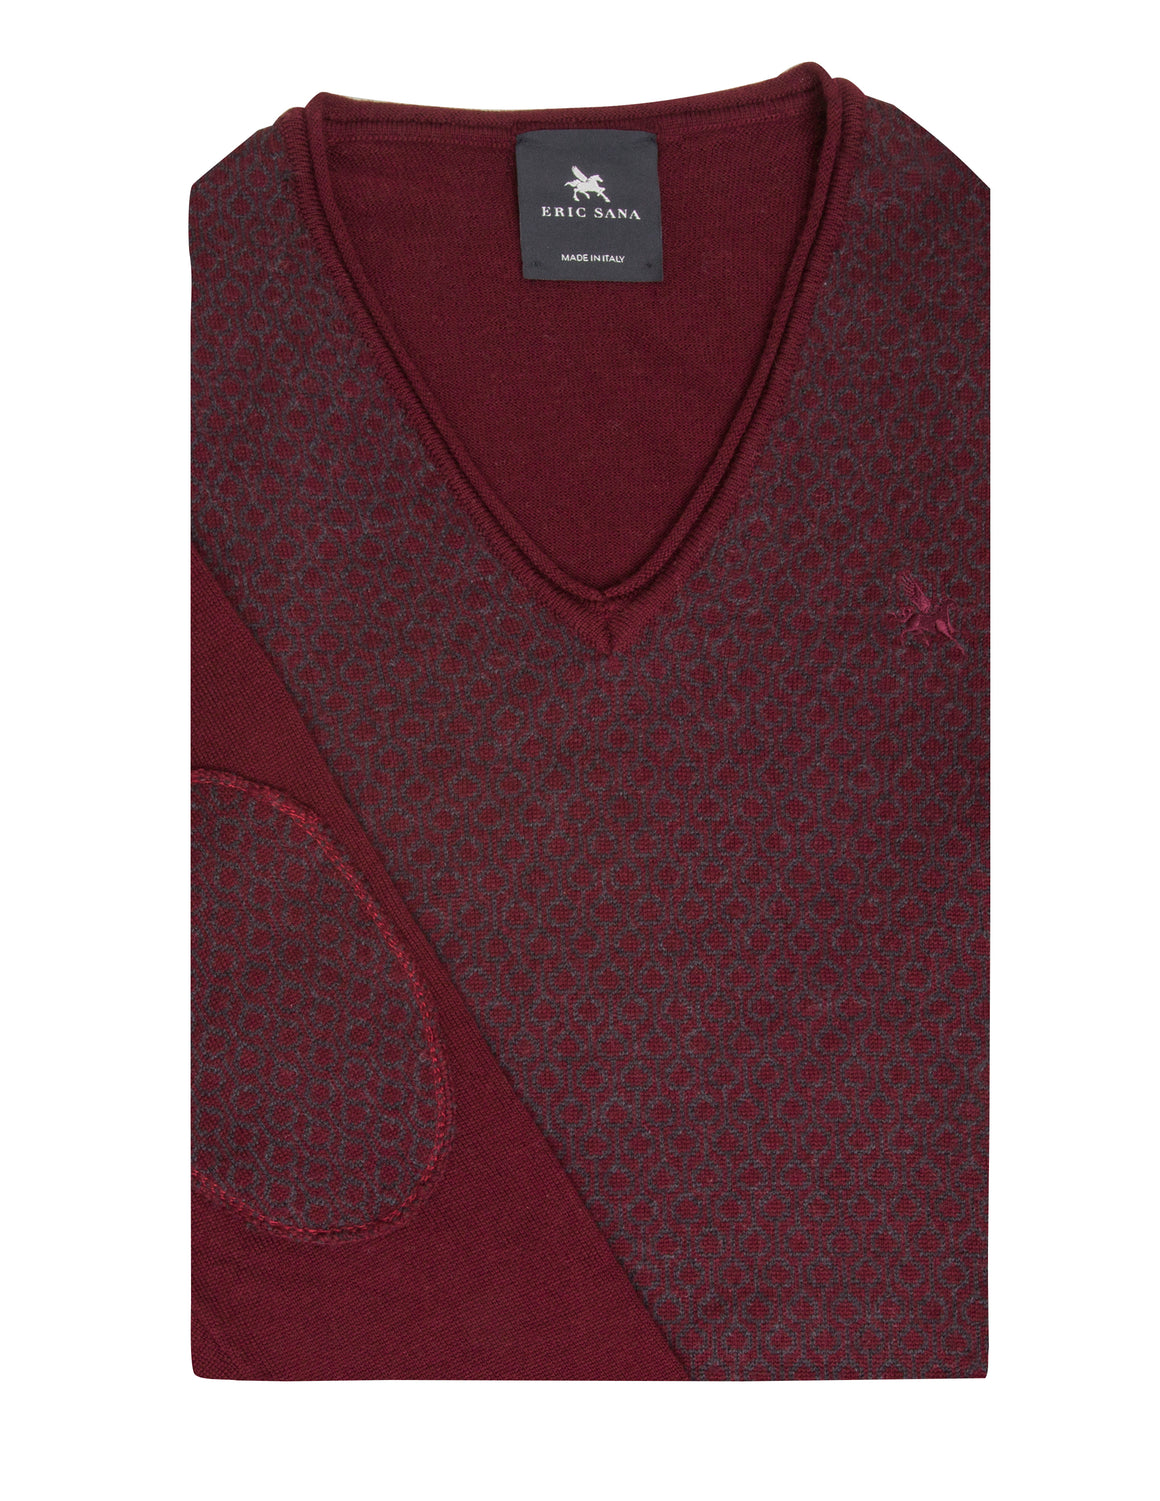 Jacquard V neck(Burgundy) - Made in Italy